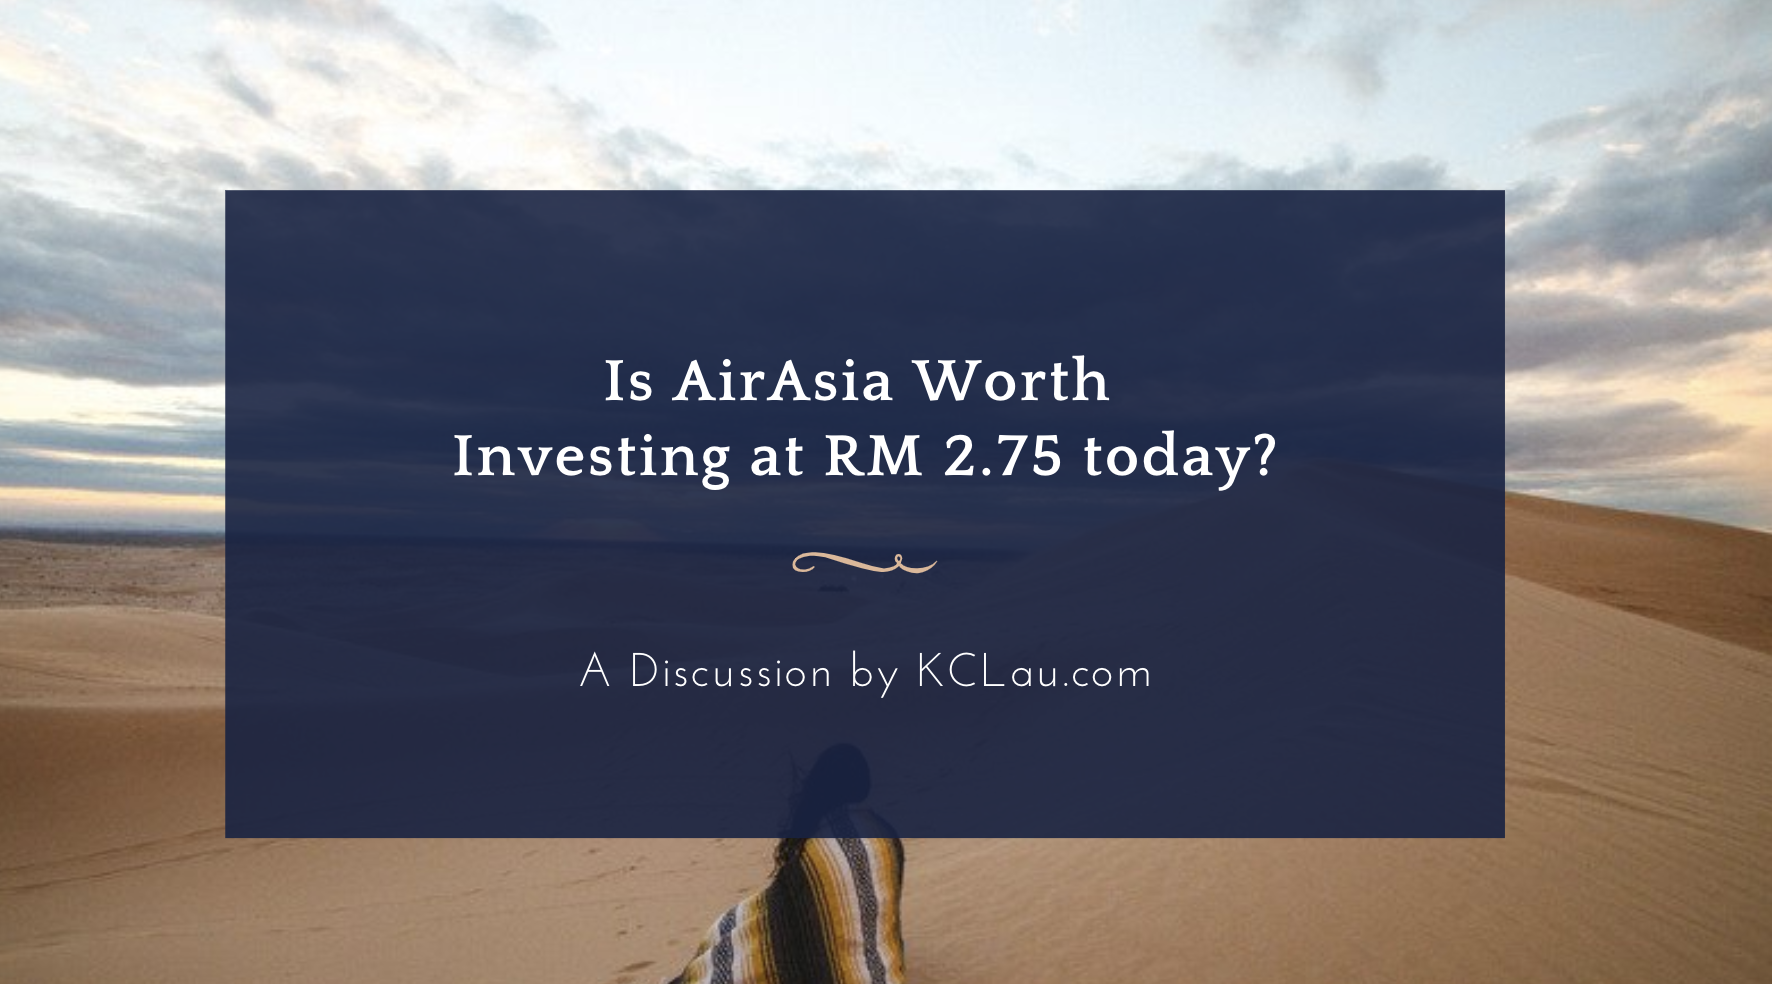 Is Airasia Worth Investing at RM 2.75 today?